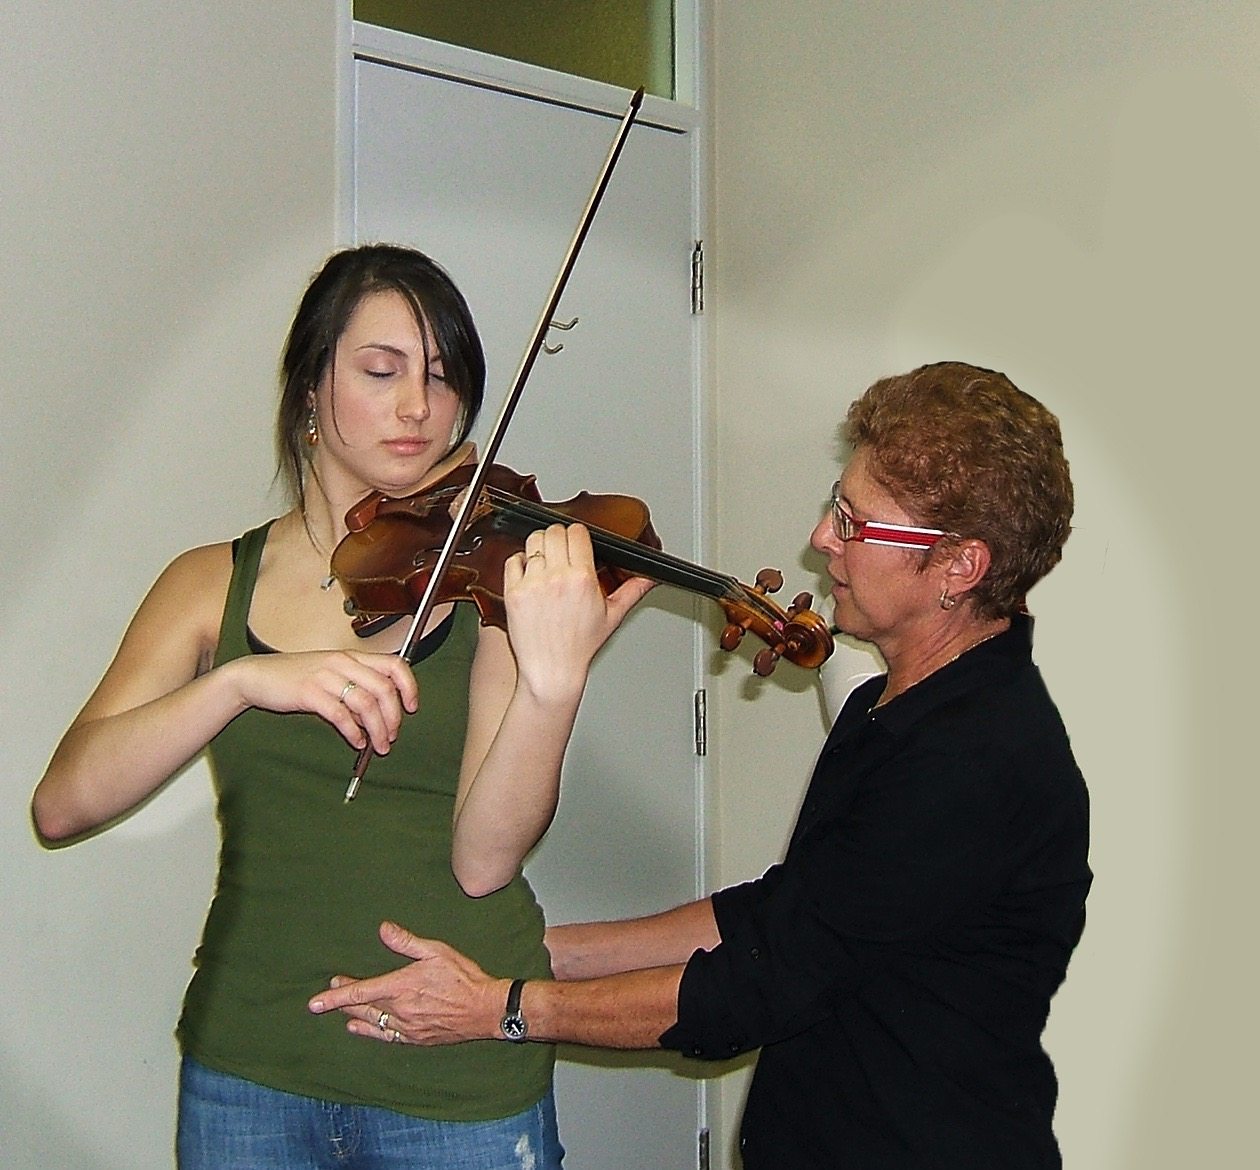 playing a violin while keeping your posture physiotherapy session